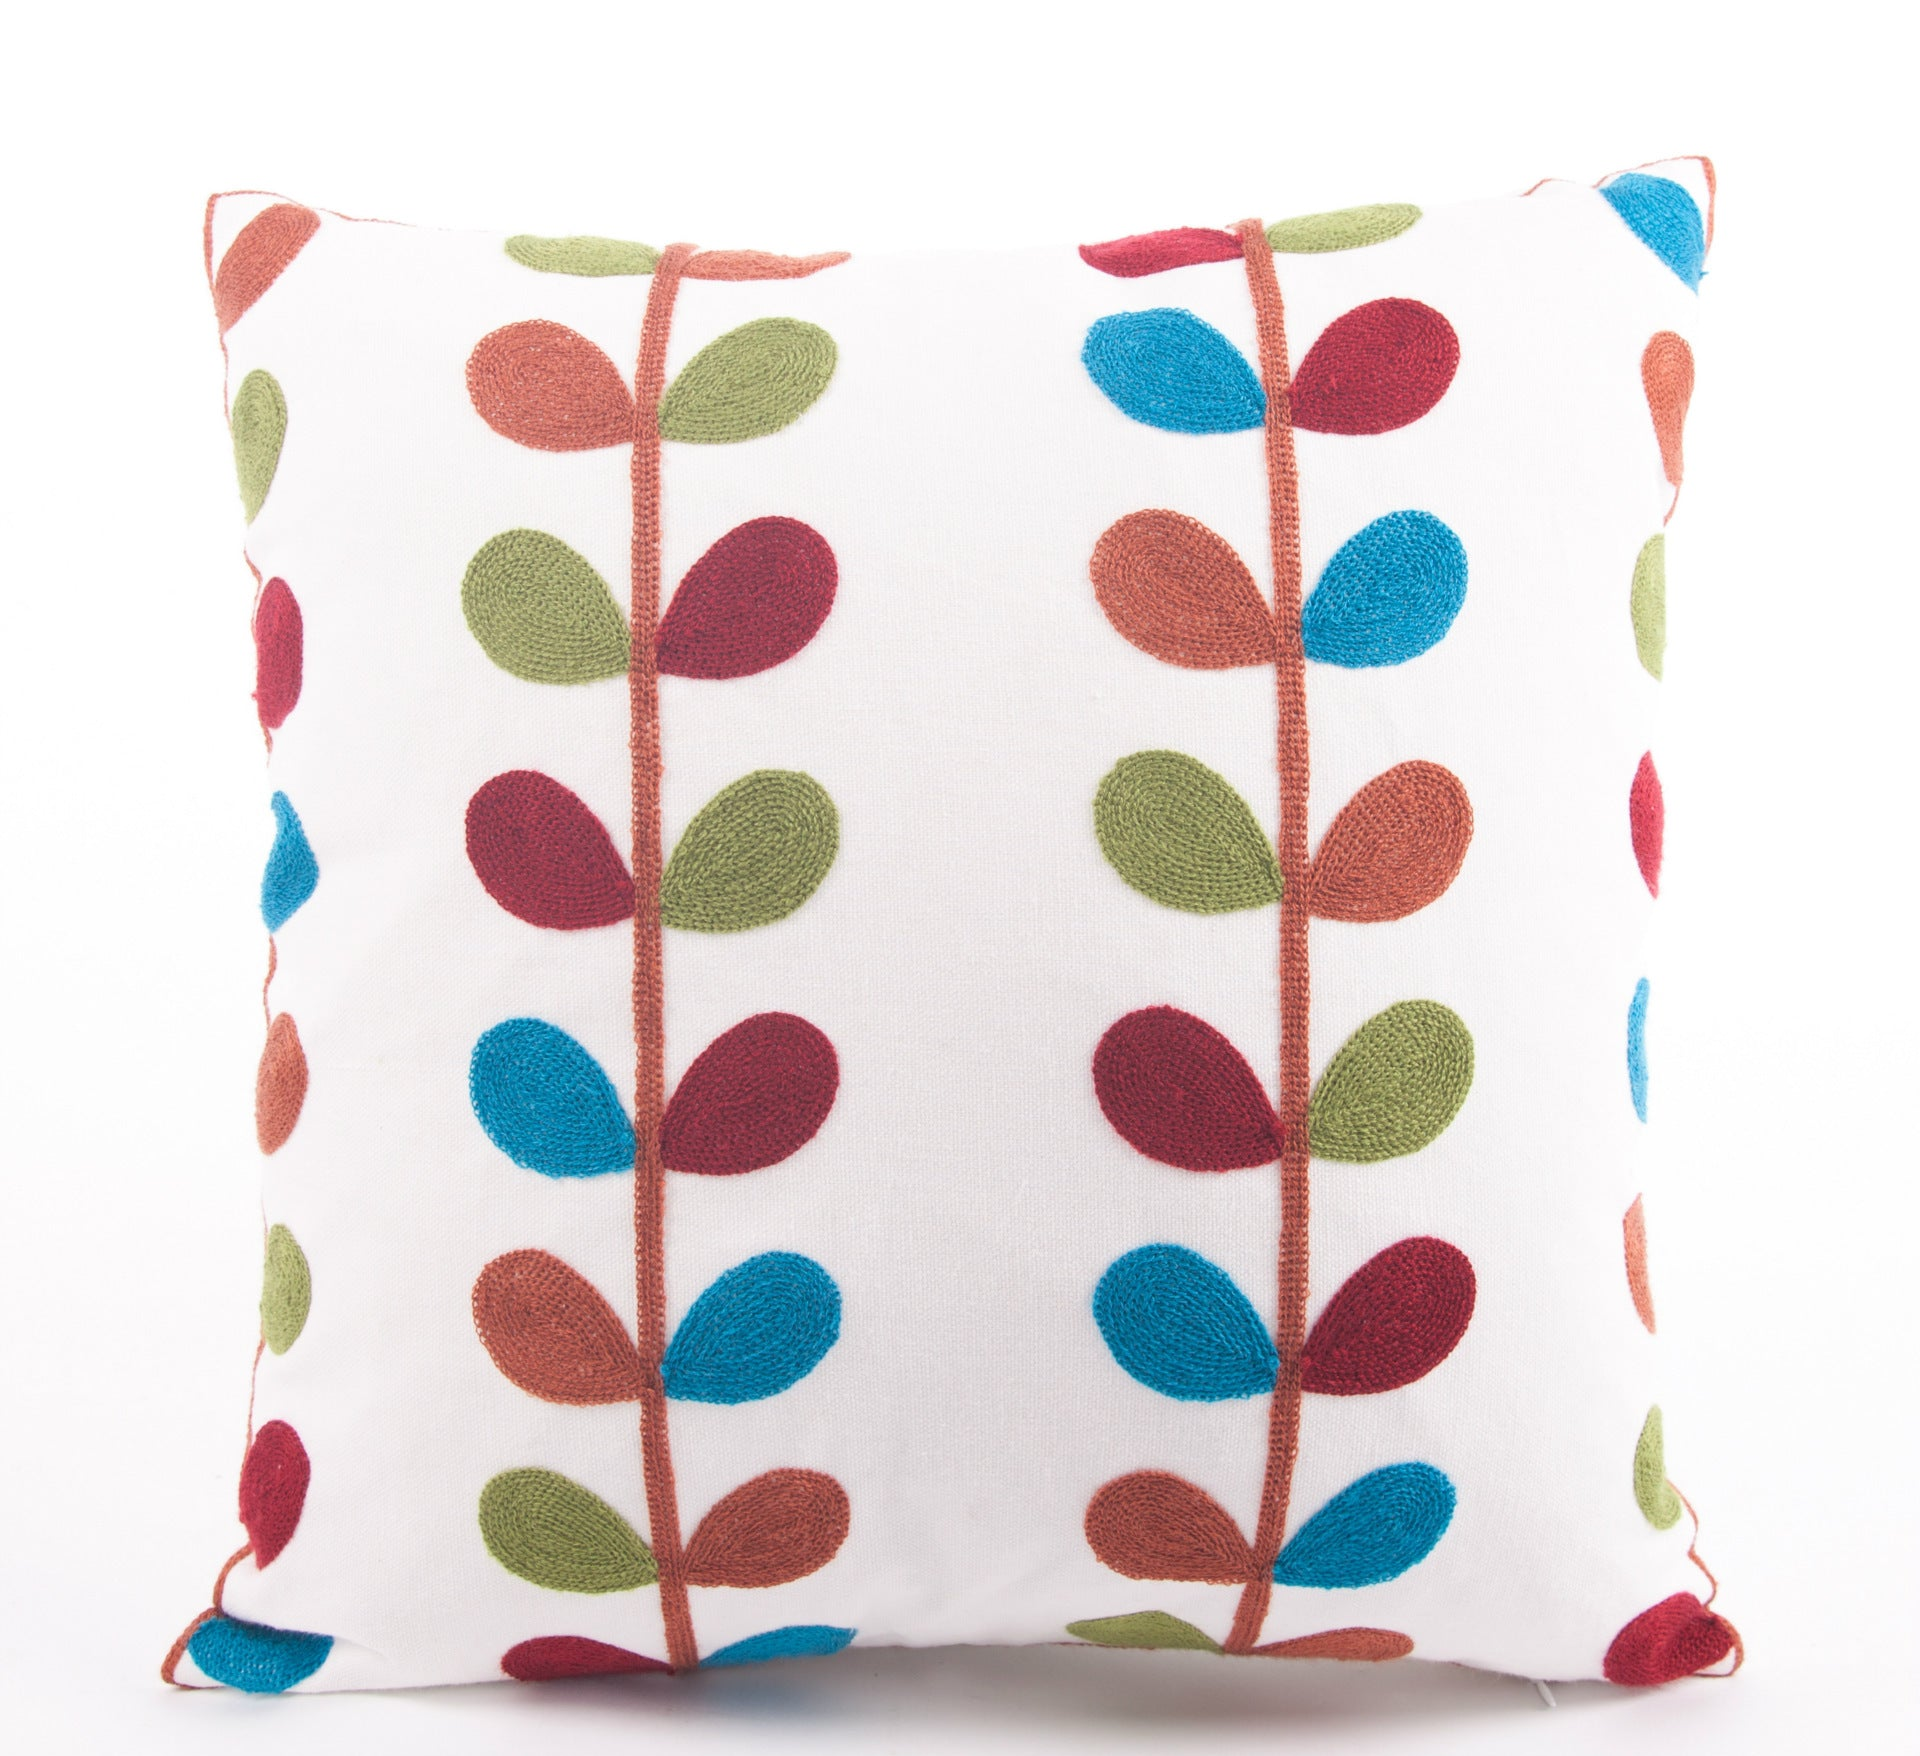 Smallfeather embroidery pillowcase bedroom pillow